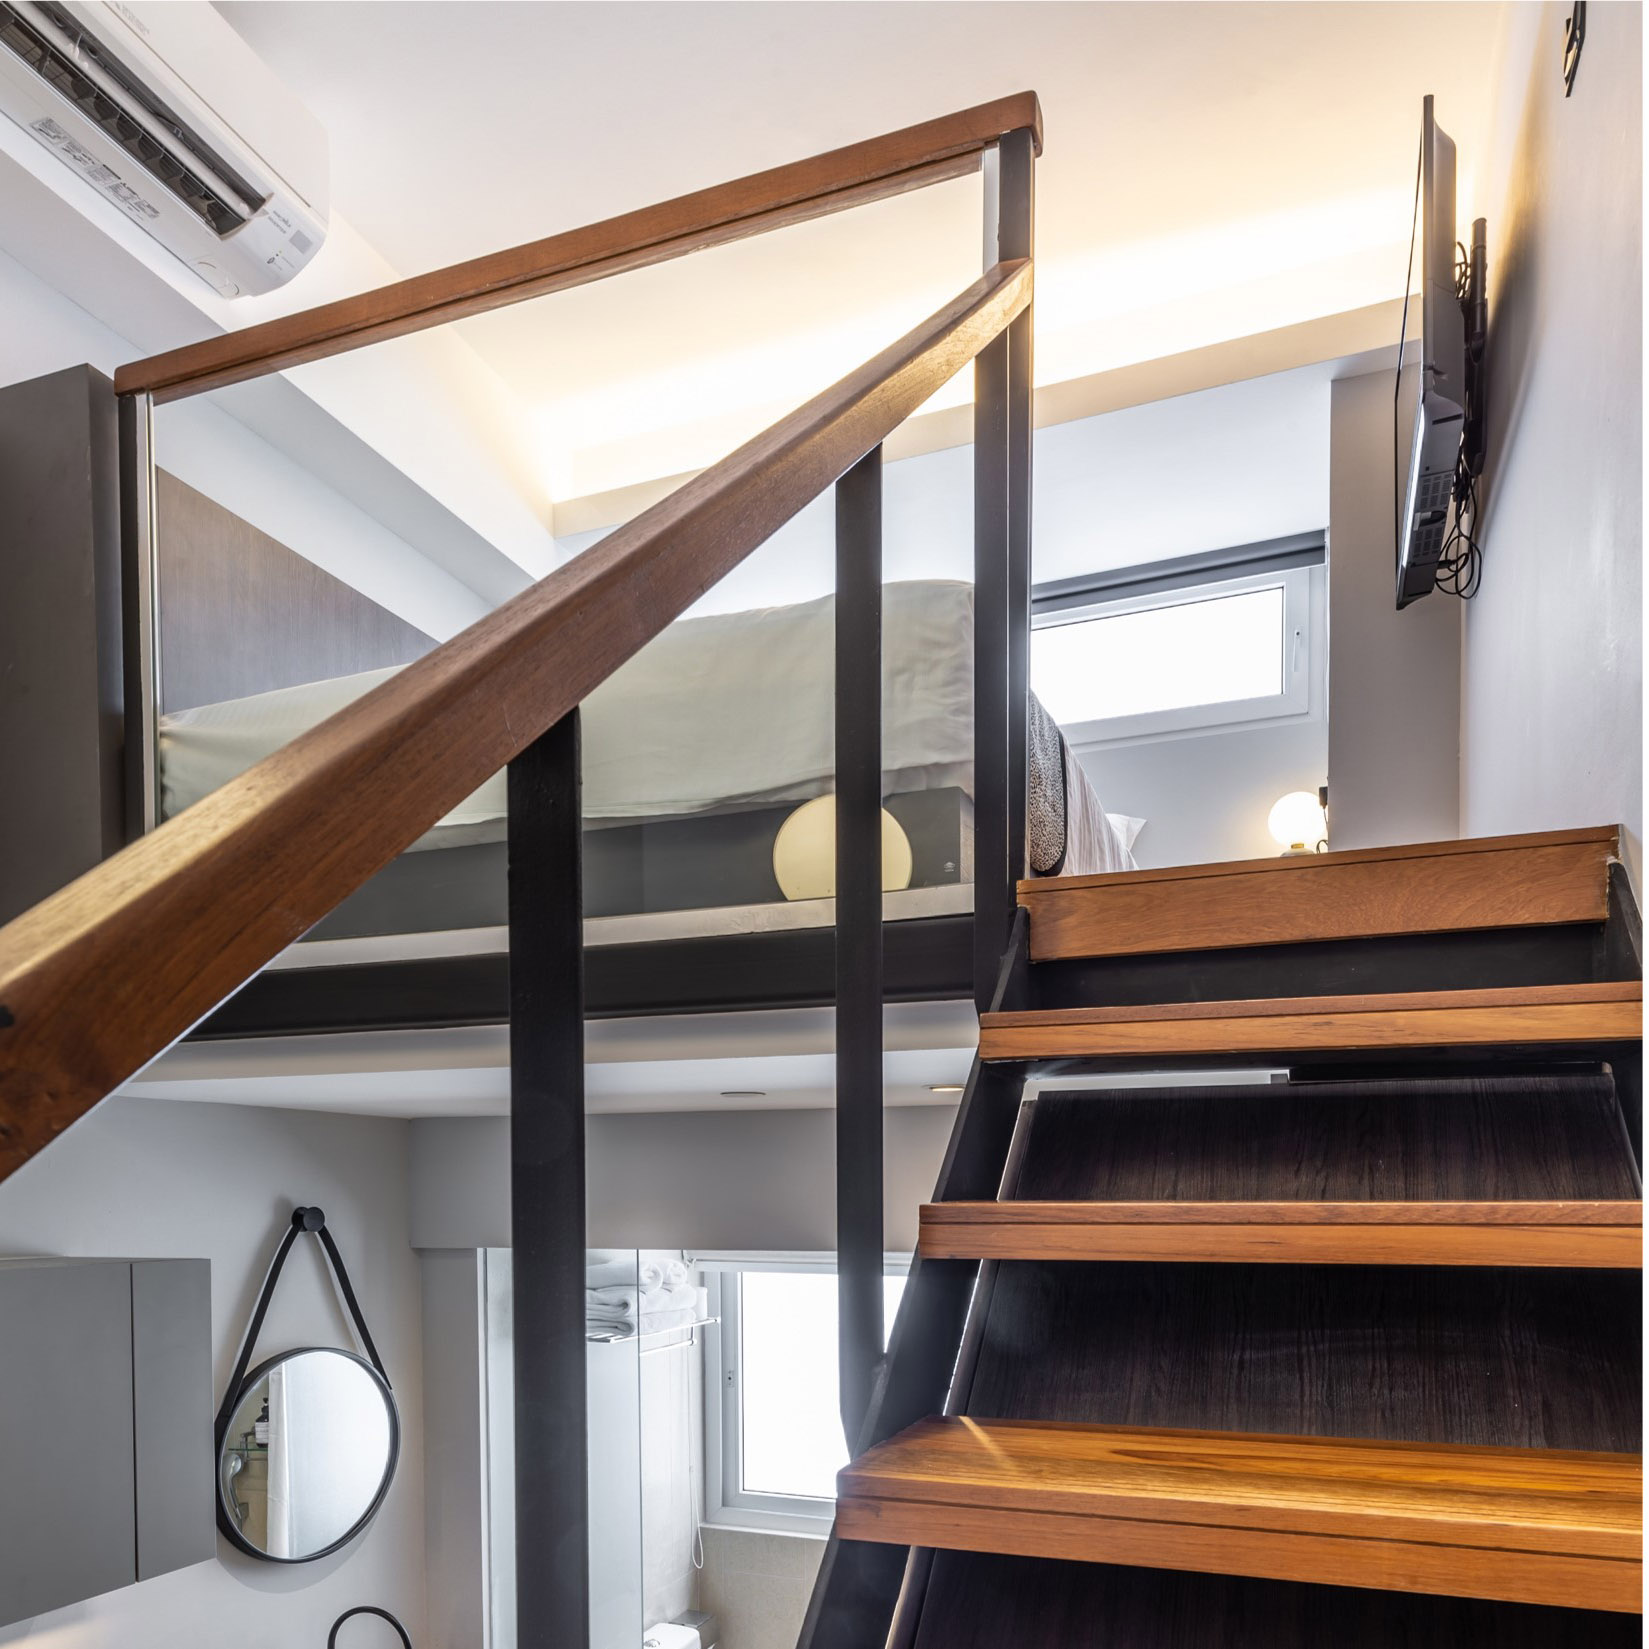 Loft Apartment - 3D2N Staycation Package